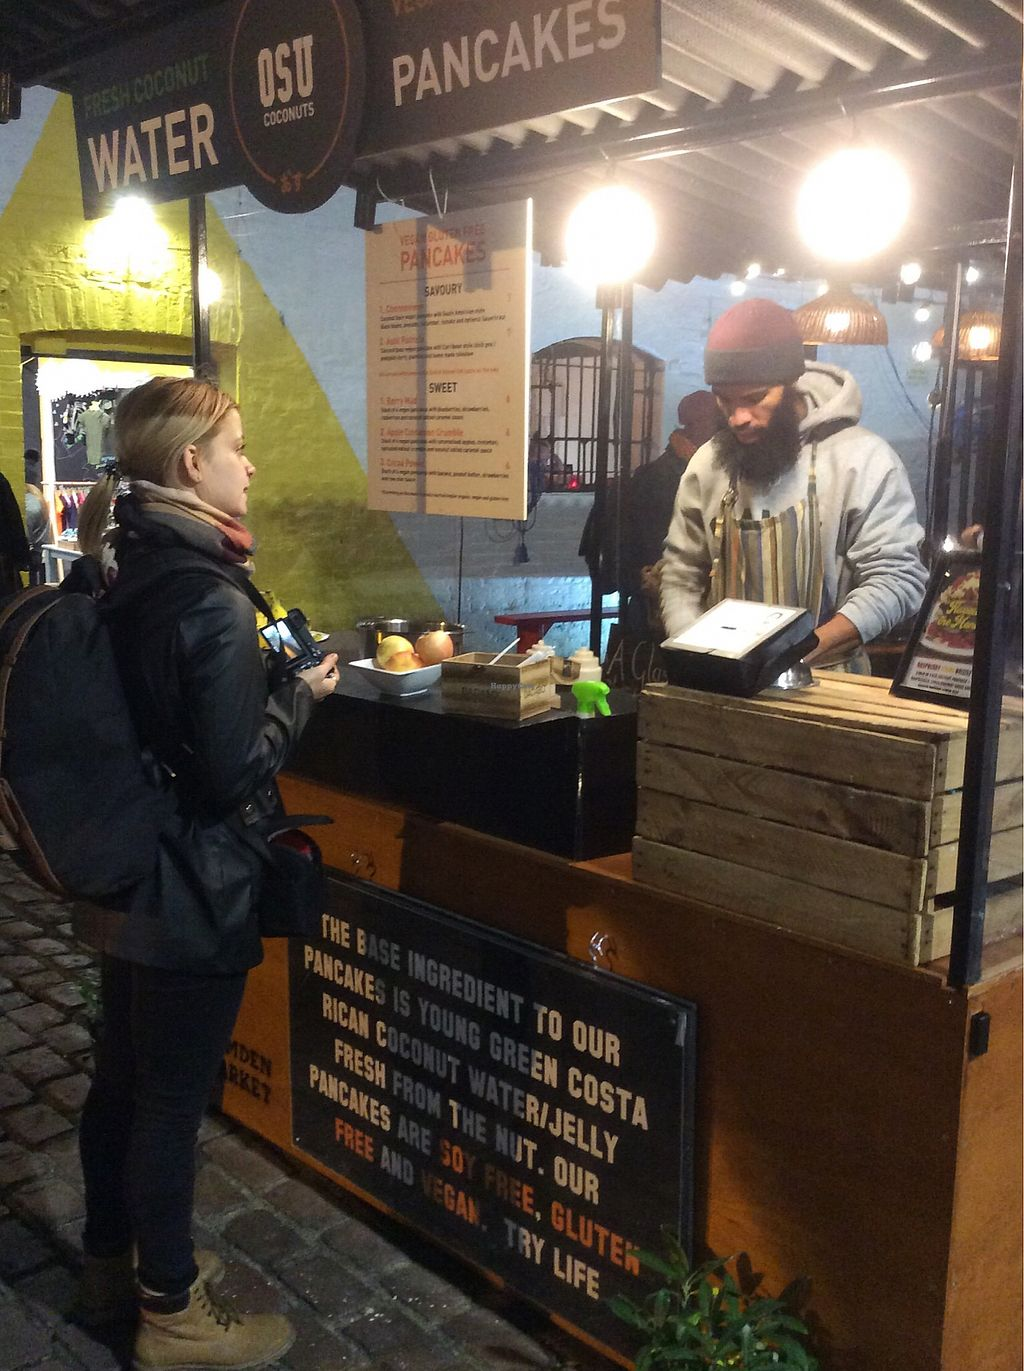 "Photo of OSU Coconuts Food Stall  by <a href=""/members/profile/jon%20active"">jon active</a> <br/>Pancaticipation! <br/> January 5, 2018  - <a href='/contact/abuse/image/96420/343338'>Report</a>"